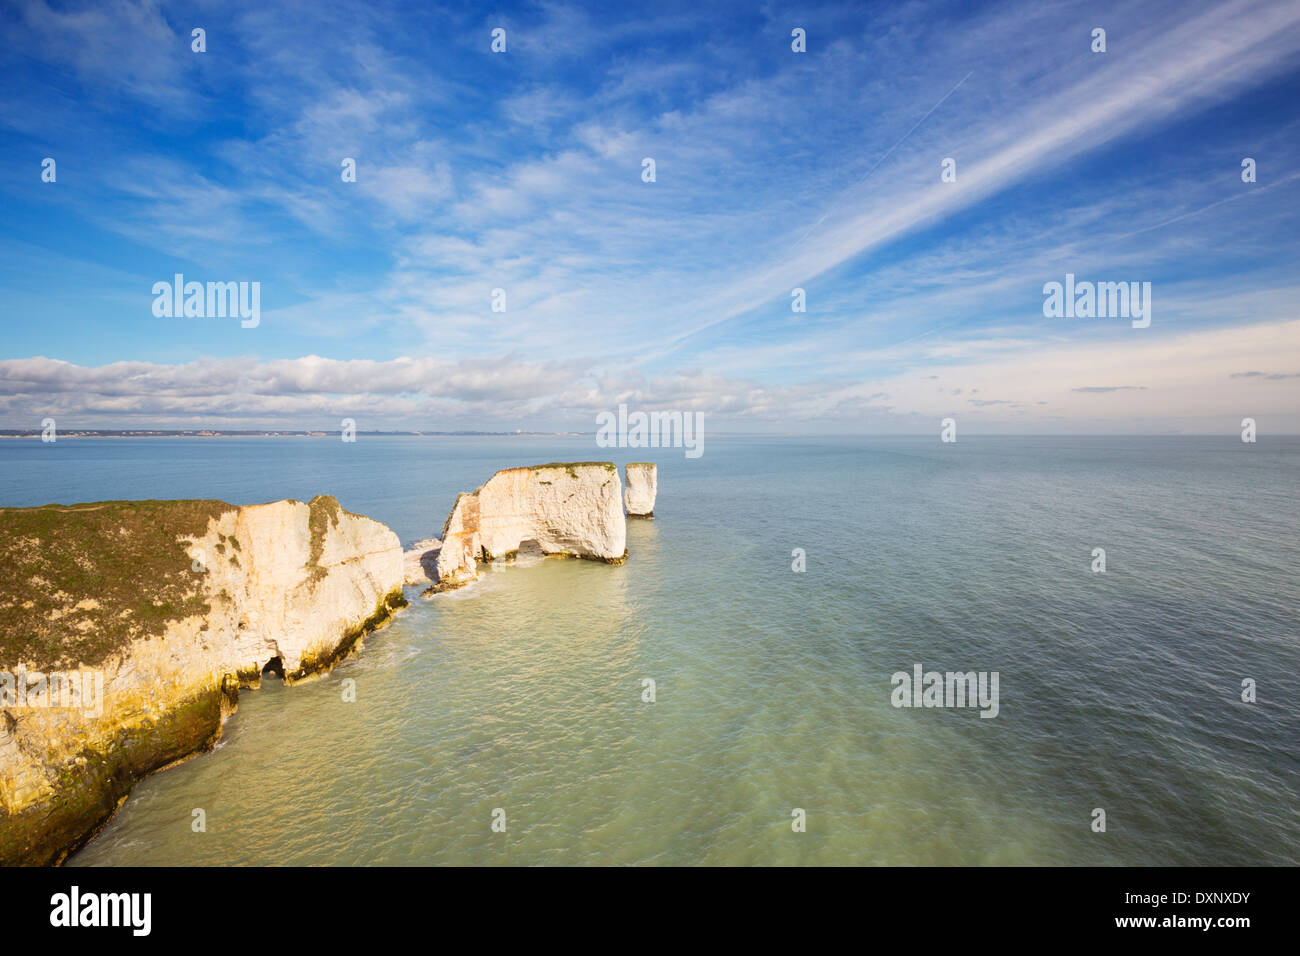 The cliffs and rock stacks of Old Harry Rocks on the Jurassic Coast of Dorset, England Stock Photo